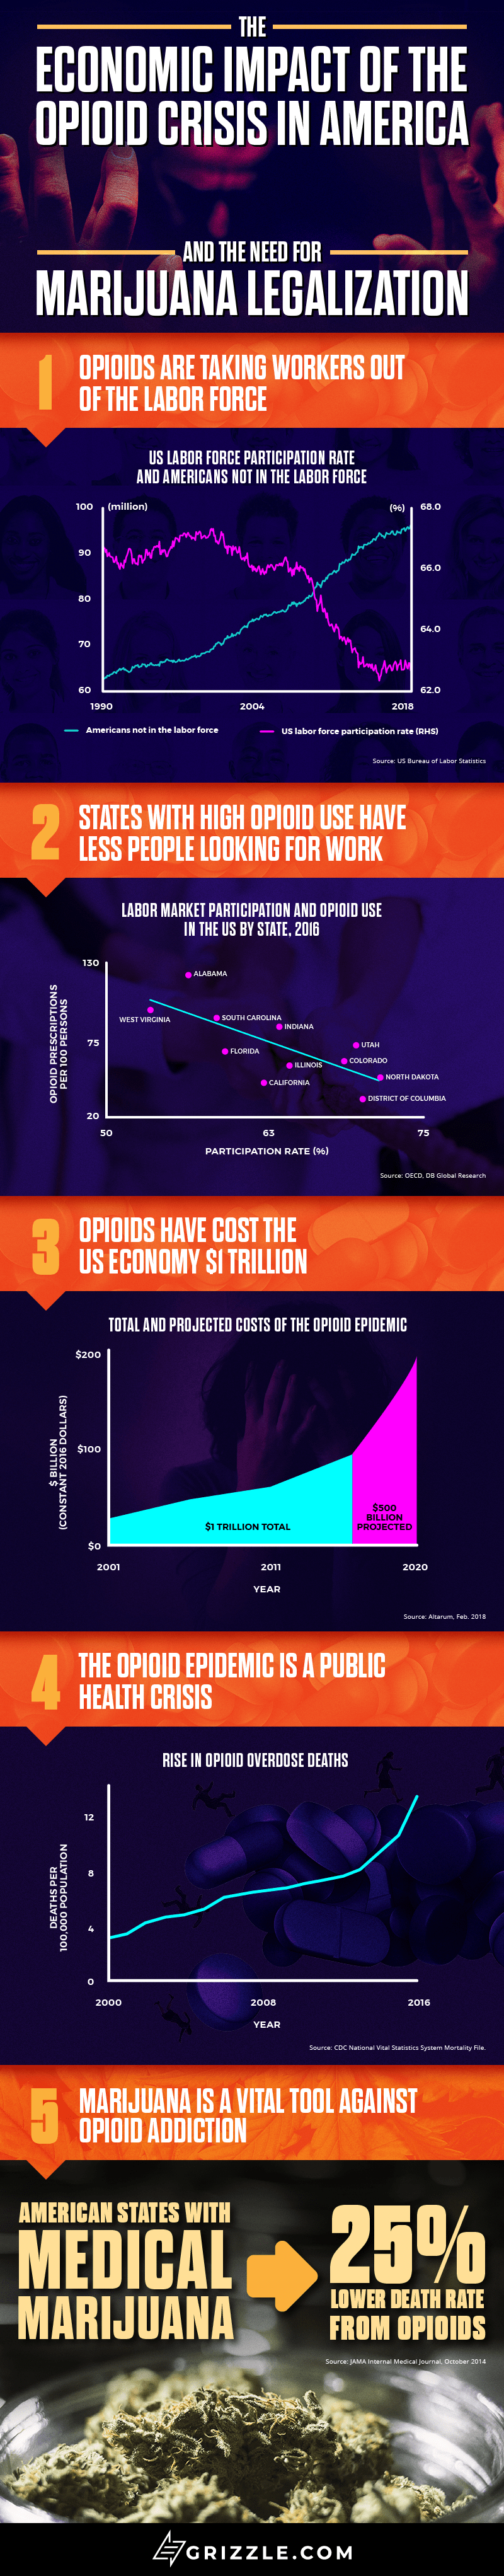 cannabis legalization and the opioid epidemic - infographic